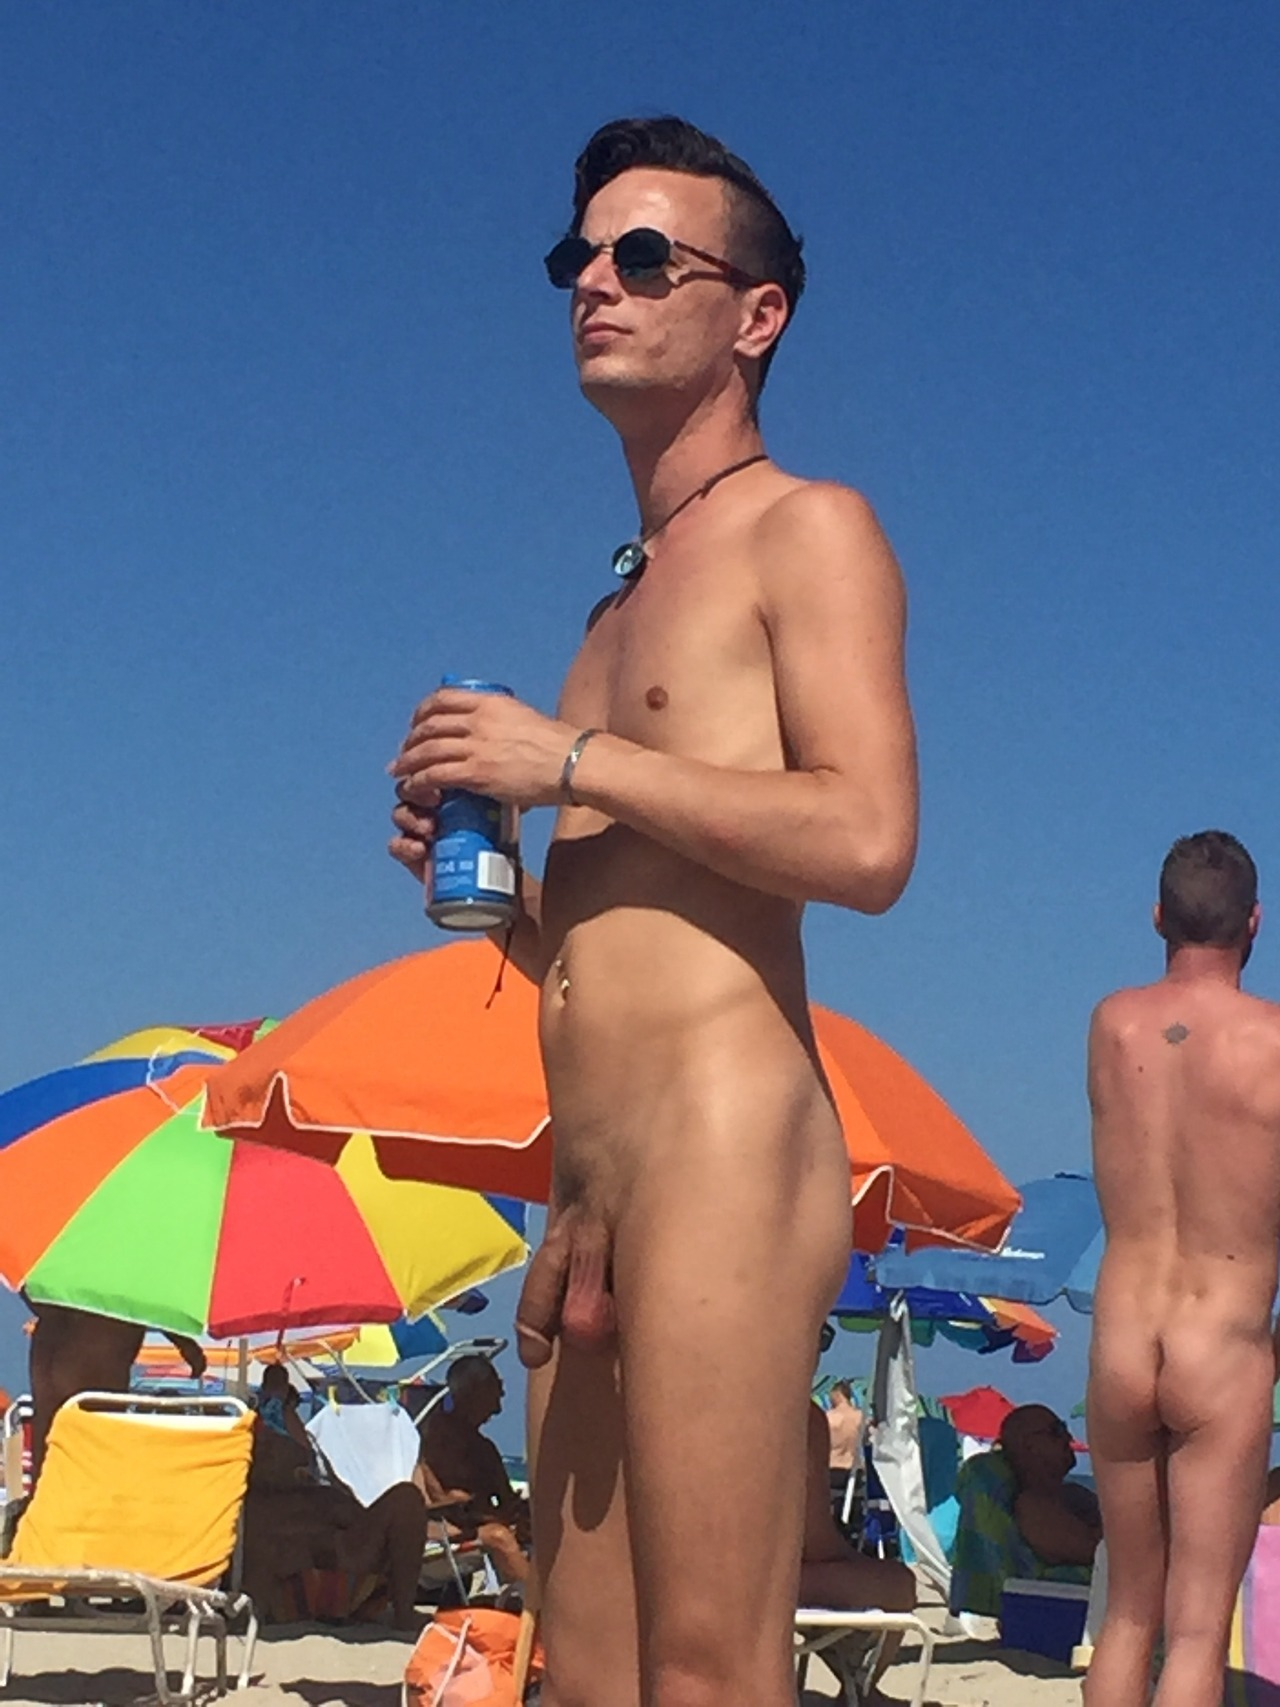 Naked Man At The Beach